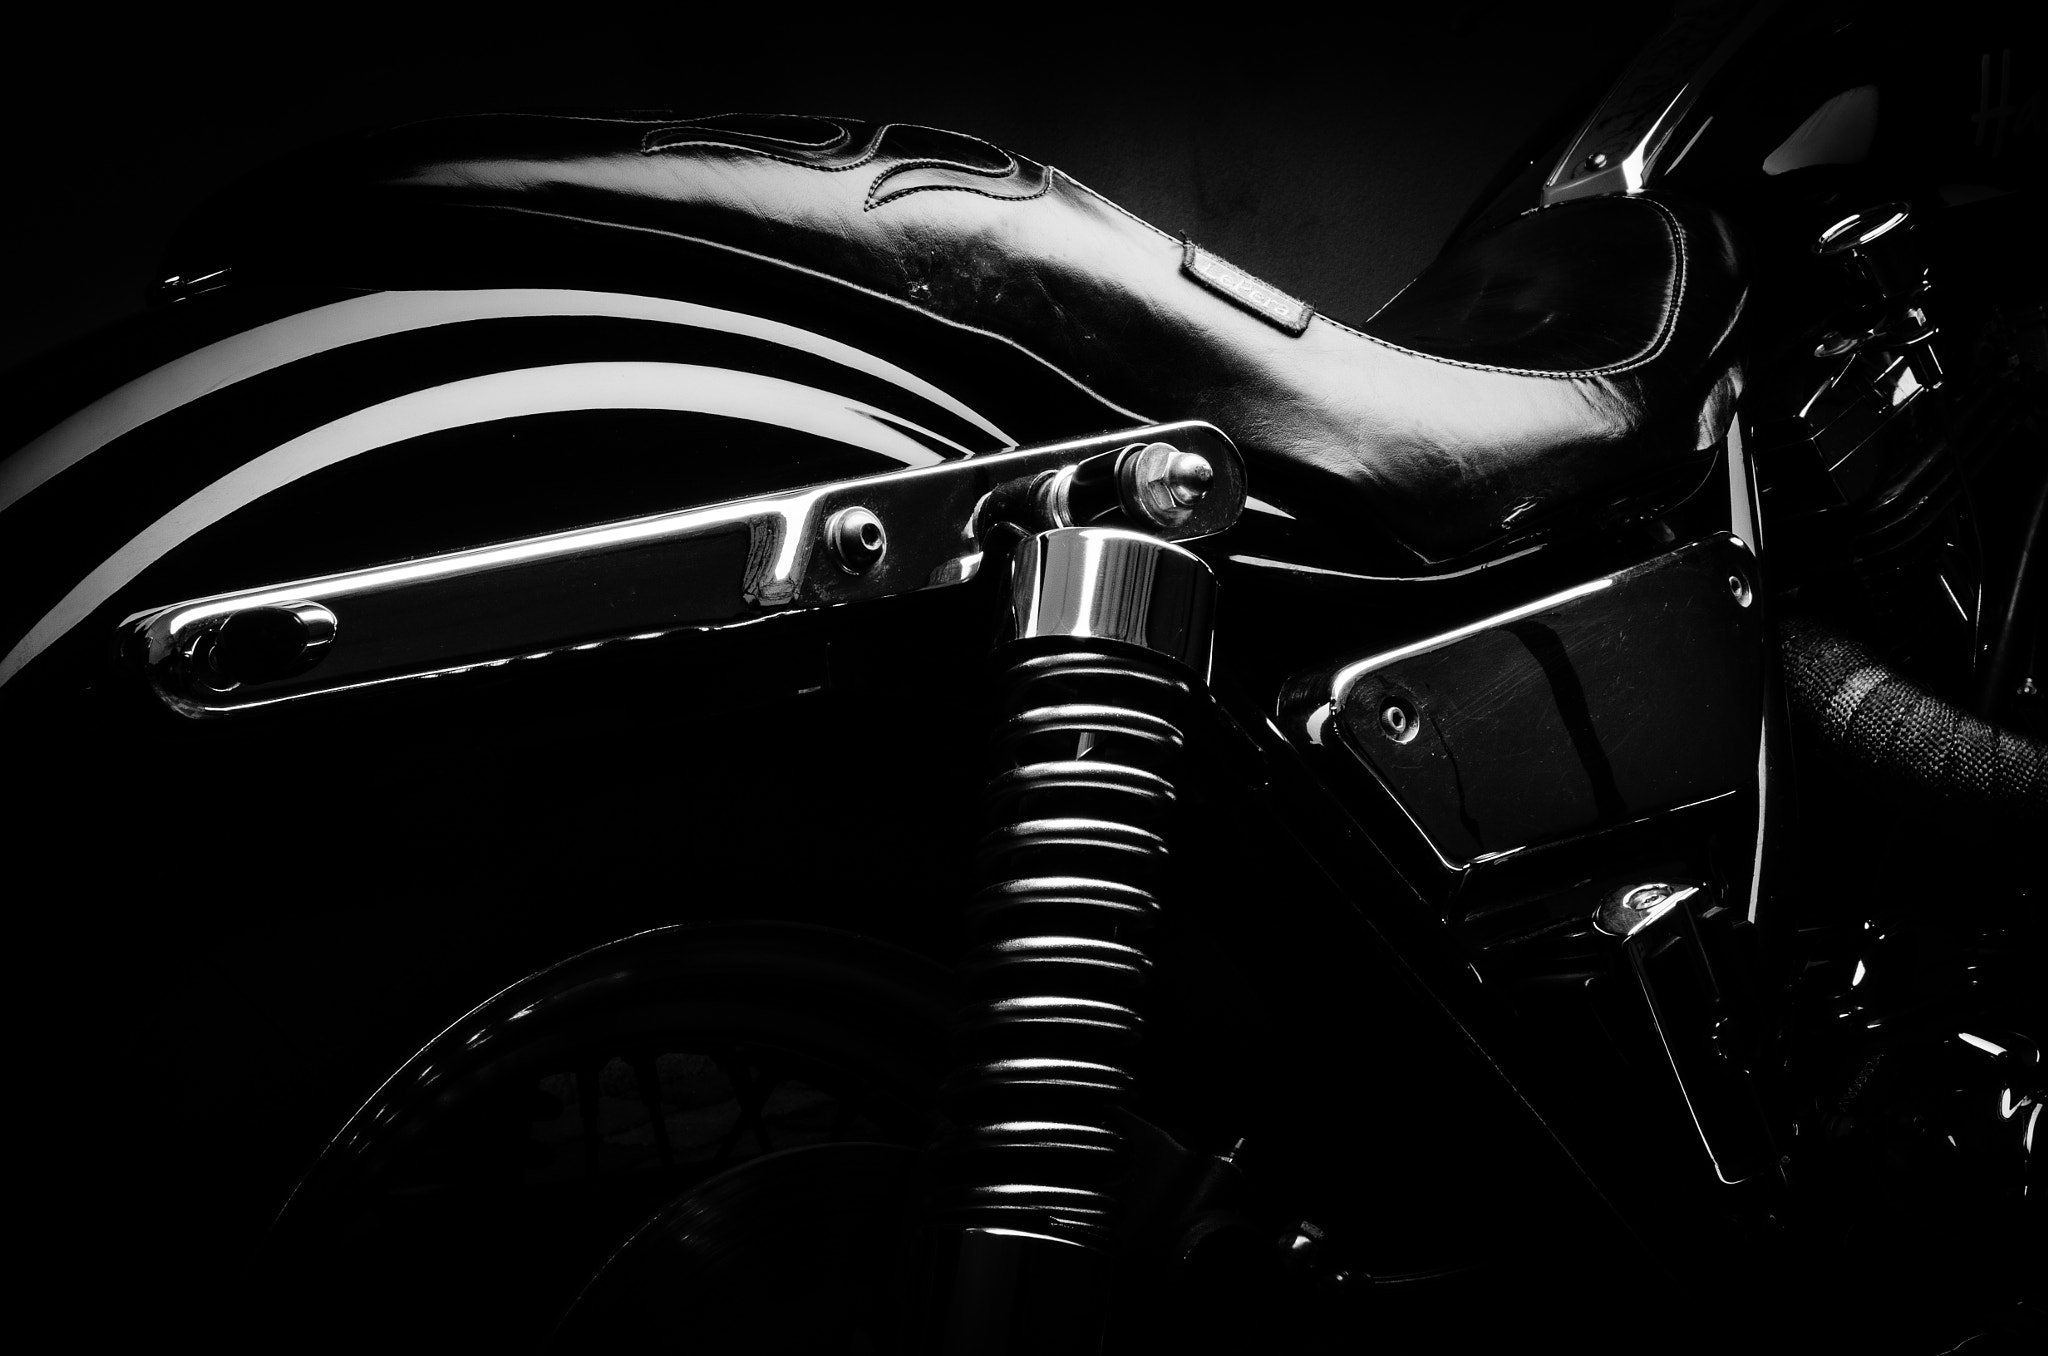 Photograph Harley 06 by Laurent André on 500px